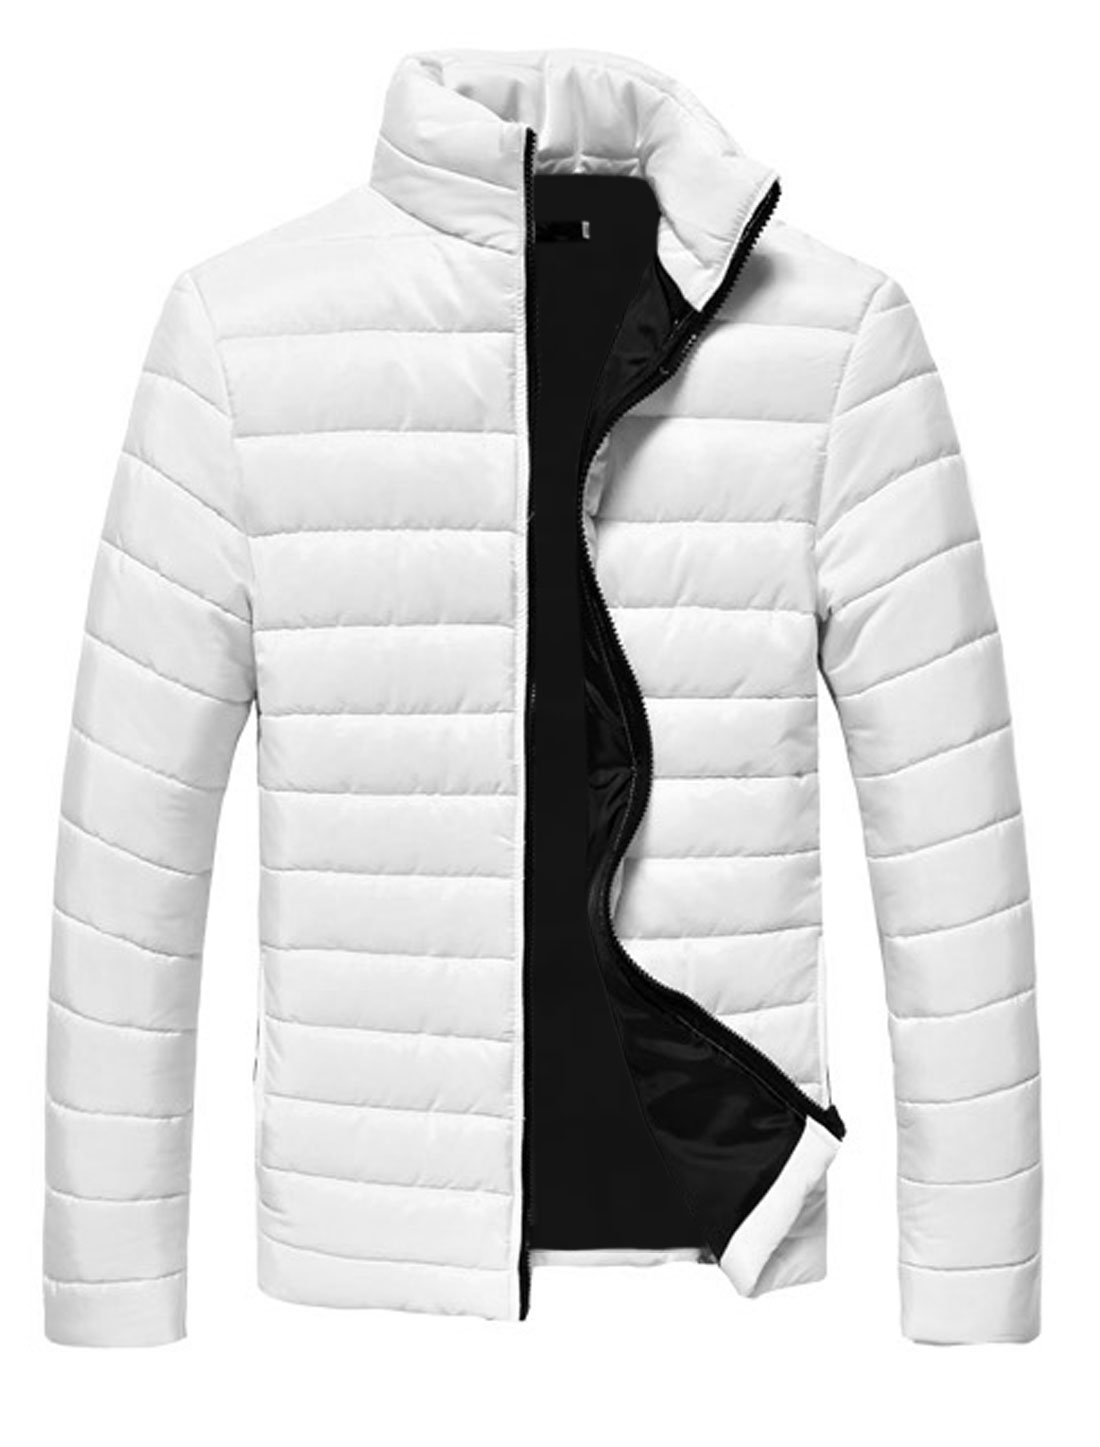 Men White Zip Closure Zipper Pockets Slim Fit Fashion Padded Coat S